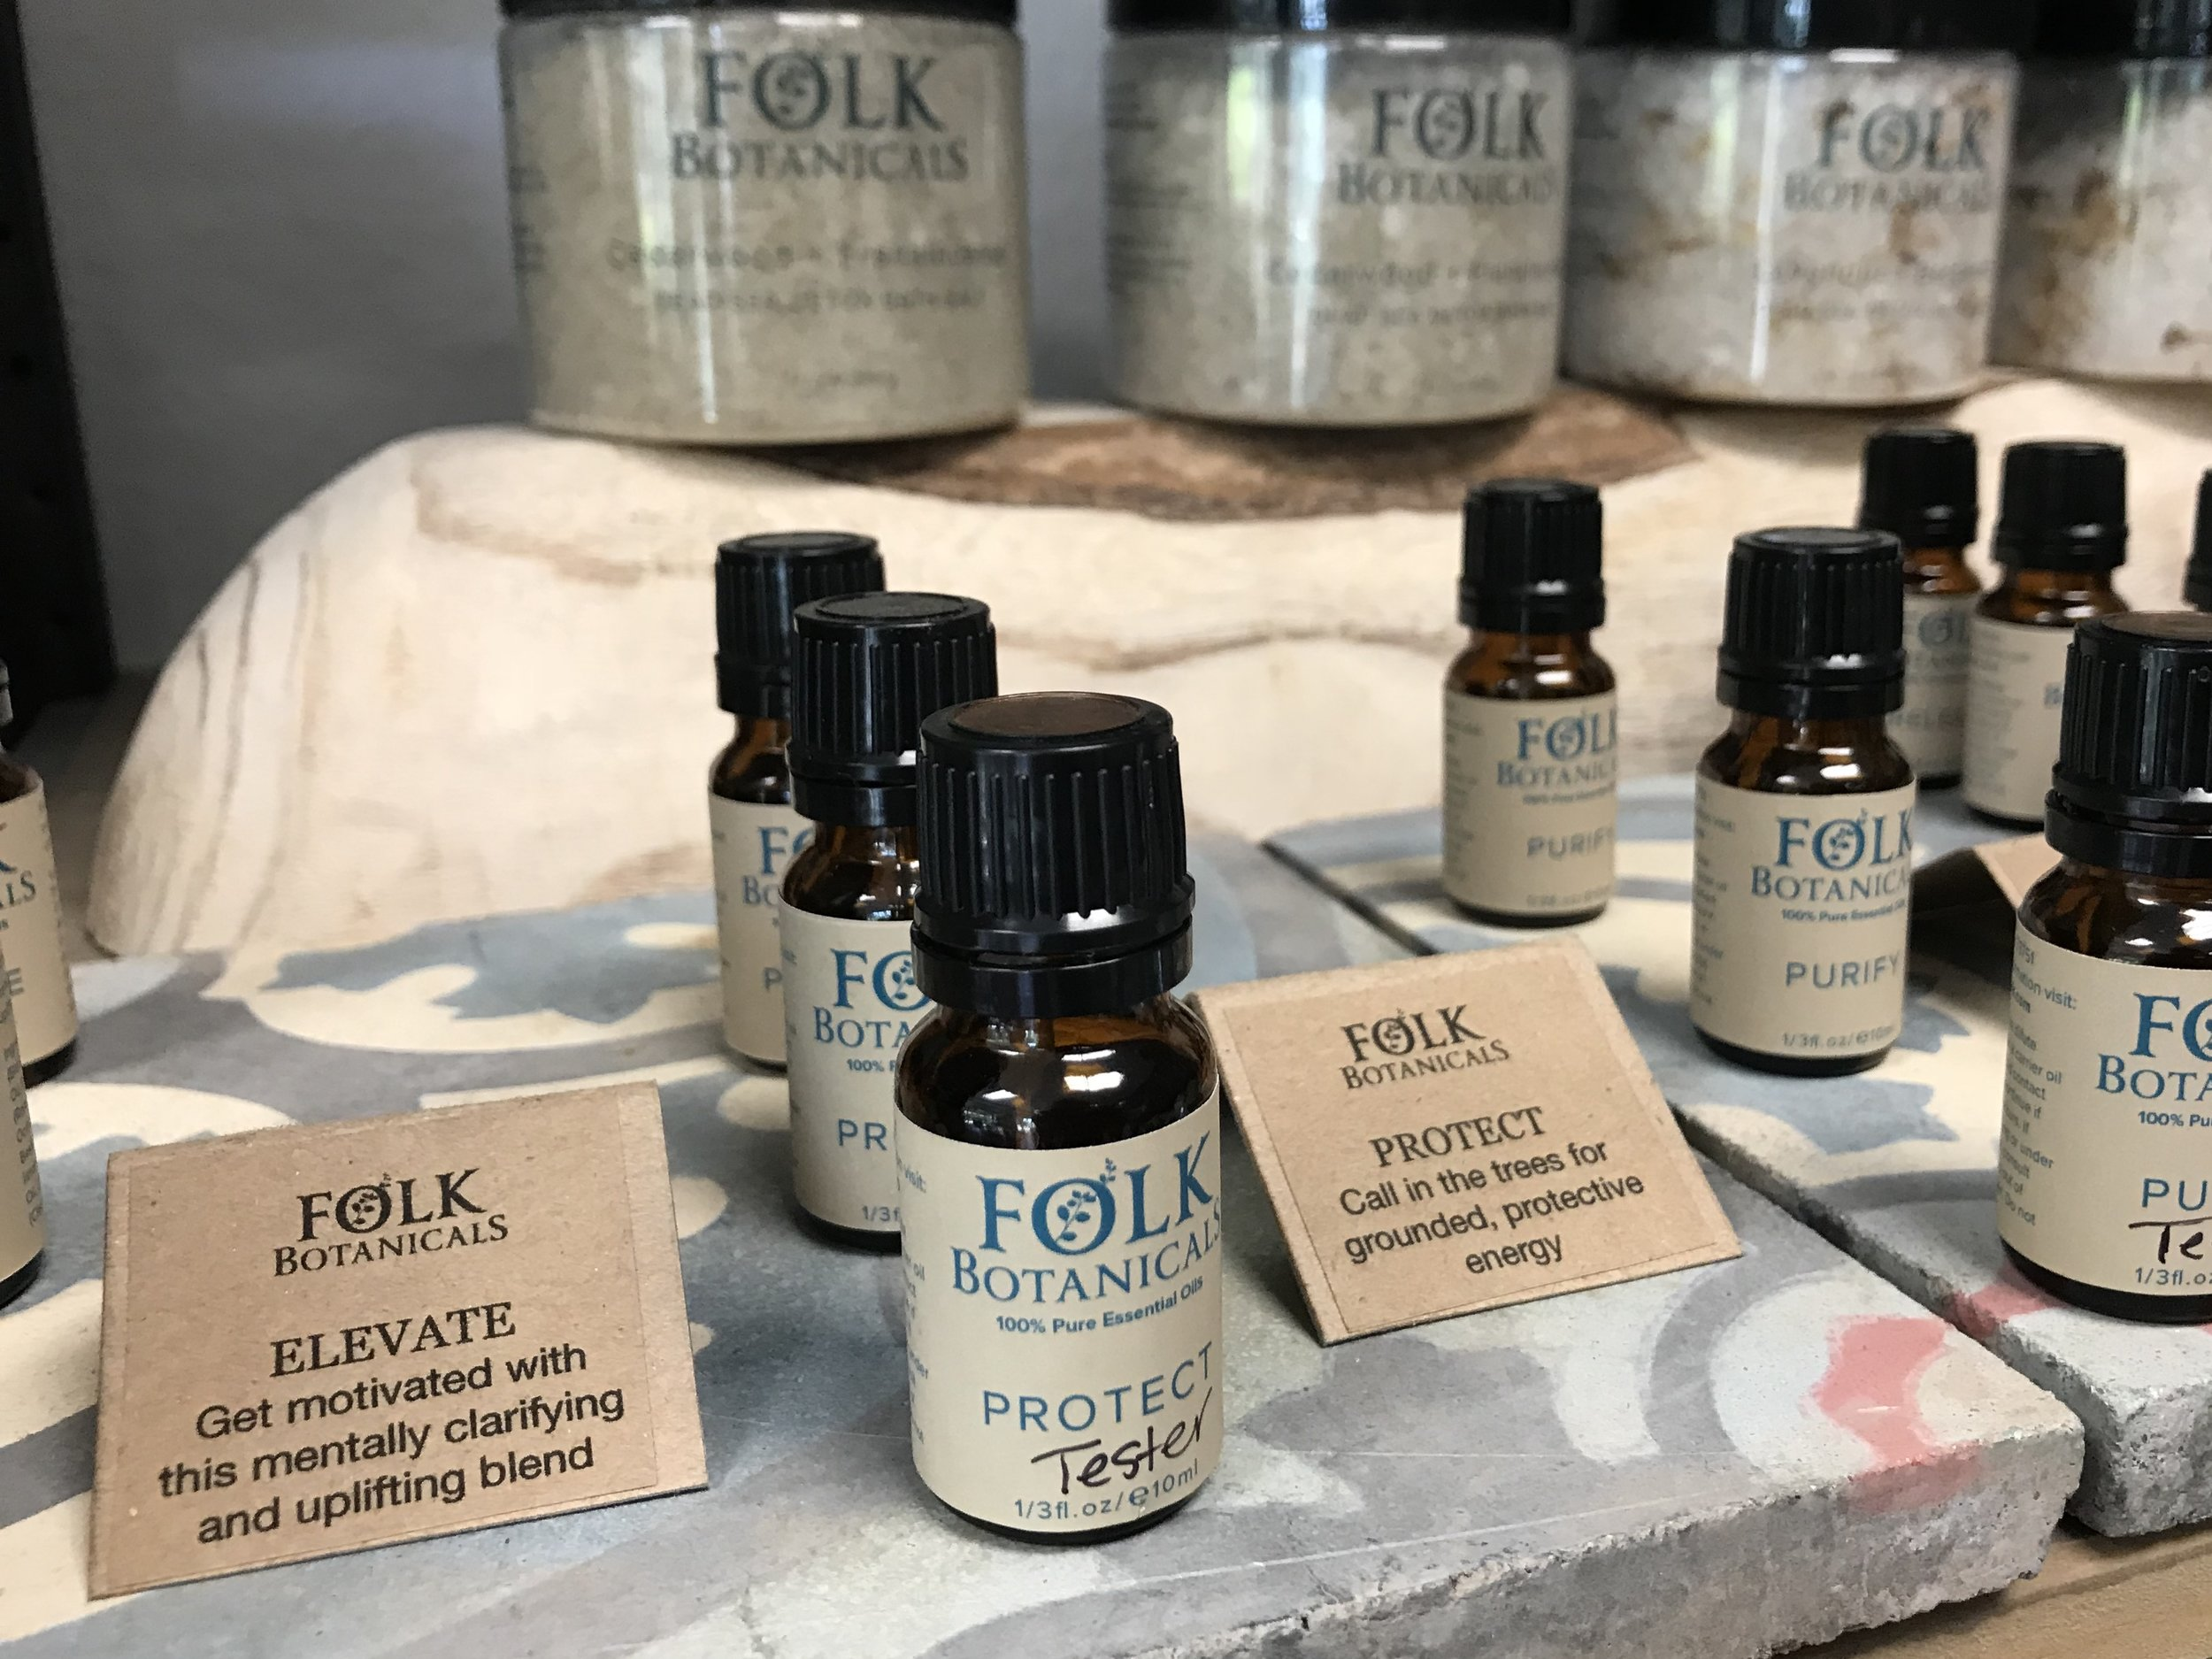 Folk Botanicals - All natural & hand crafted